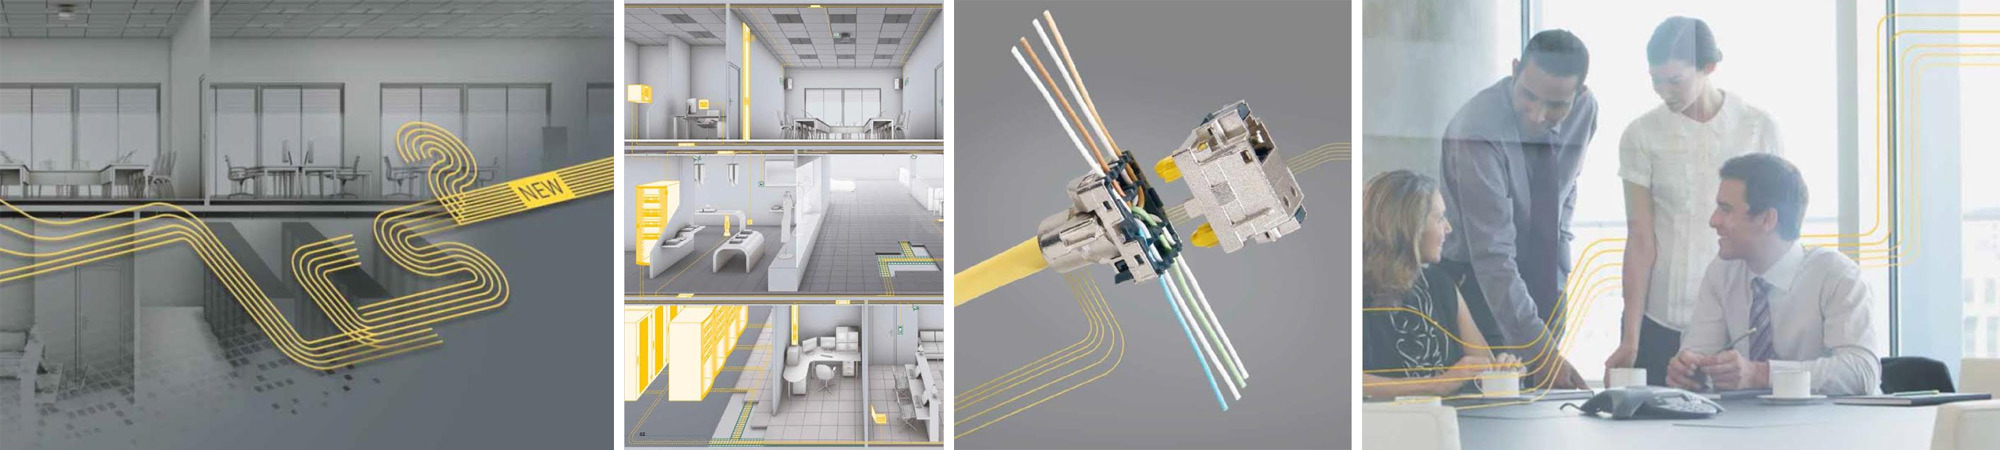 Data cabling Christchurch Structured cabling systems